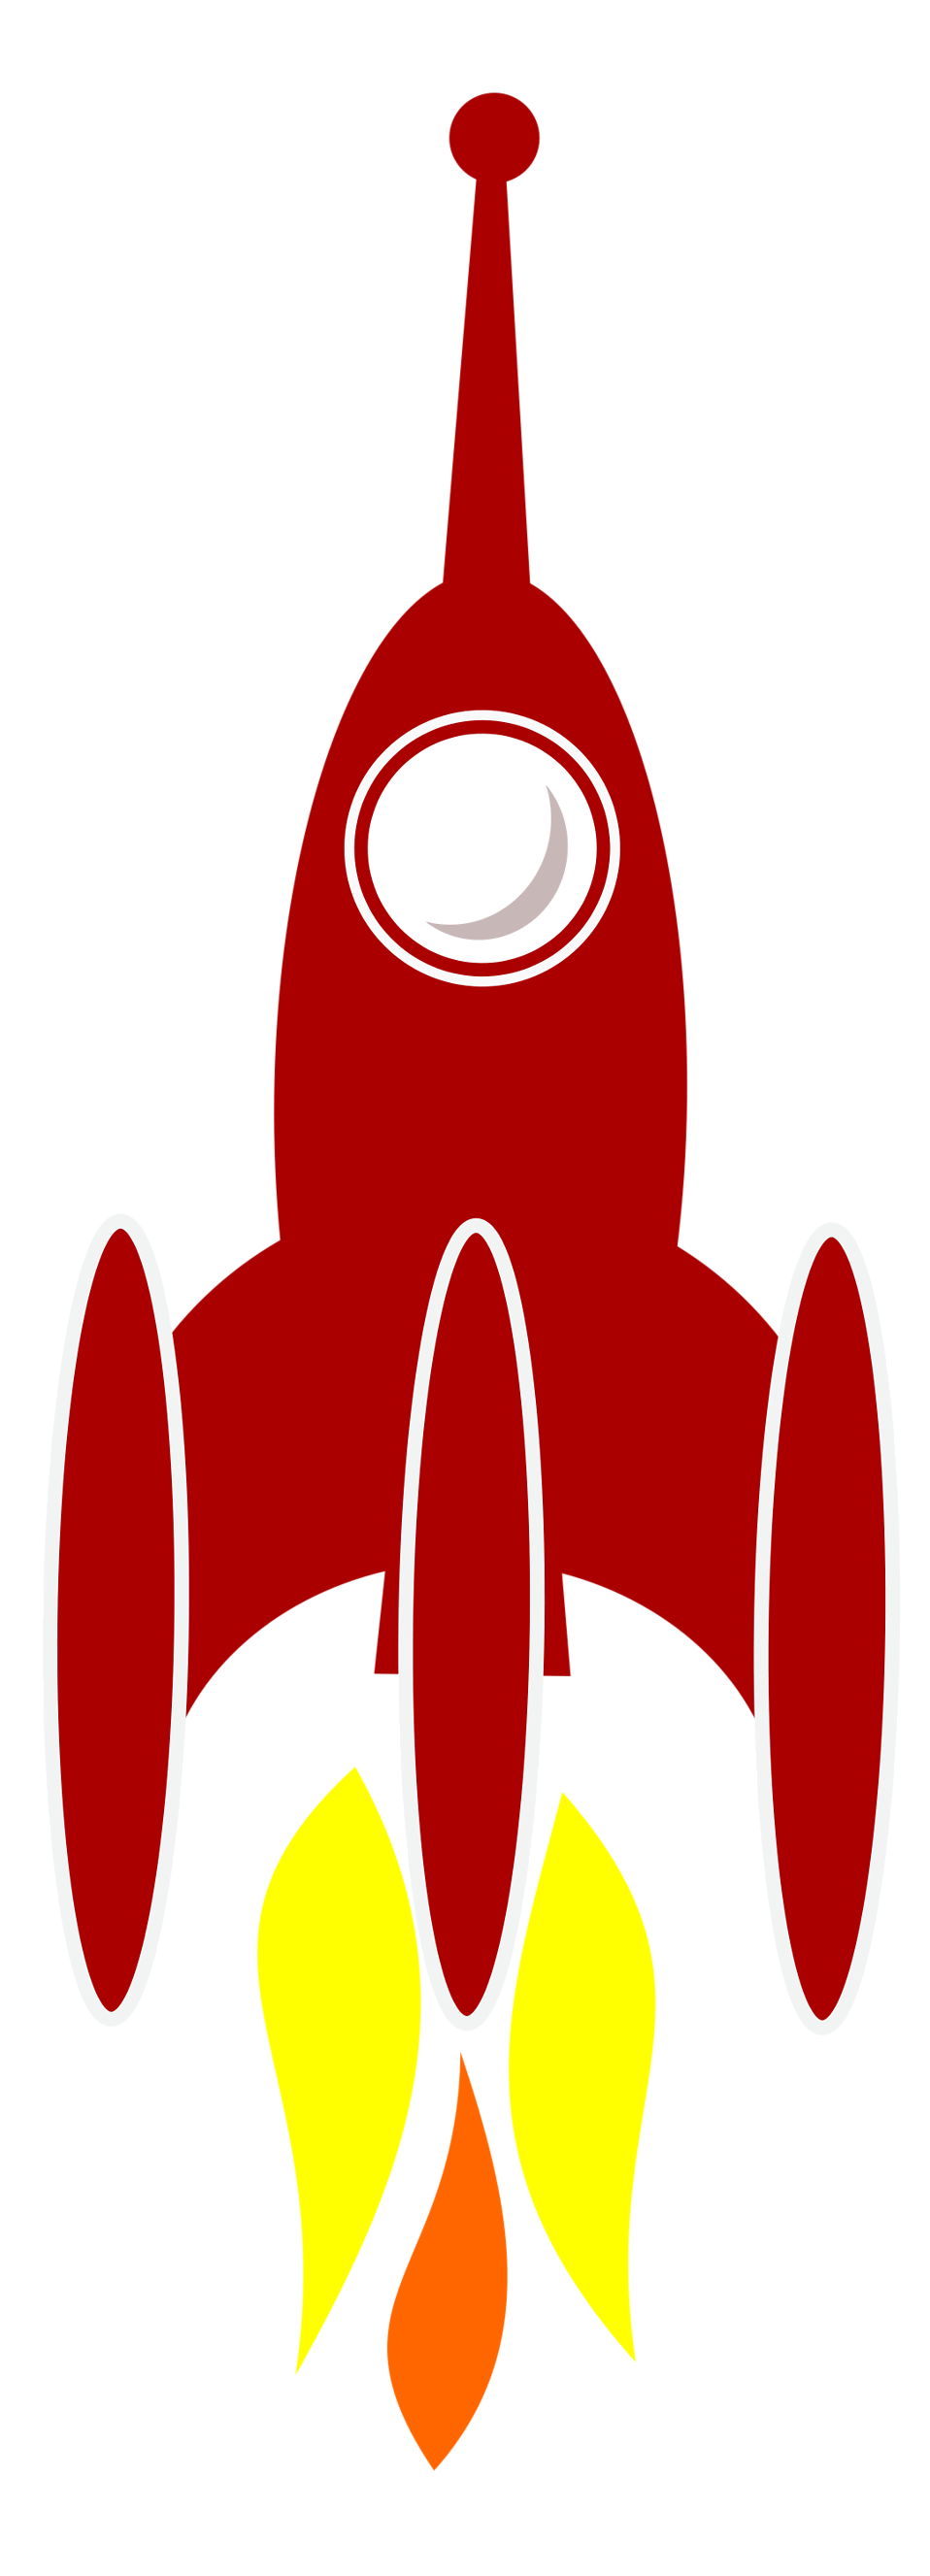 Clipart rocket transparent background. Free stock photo illustration